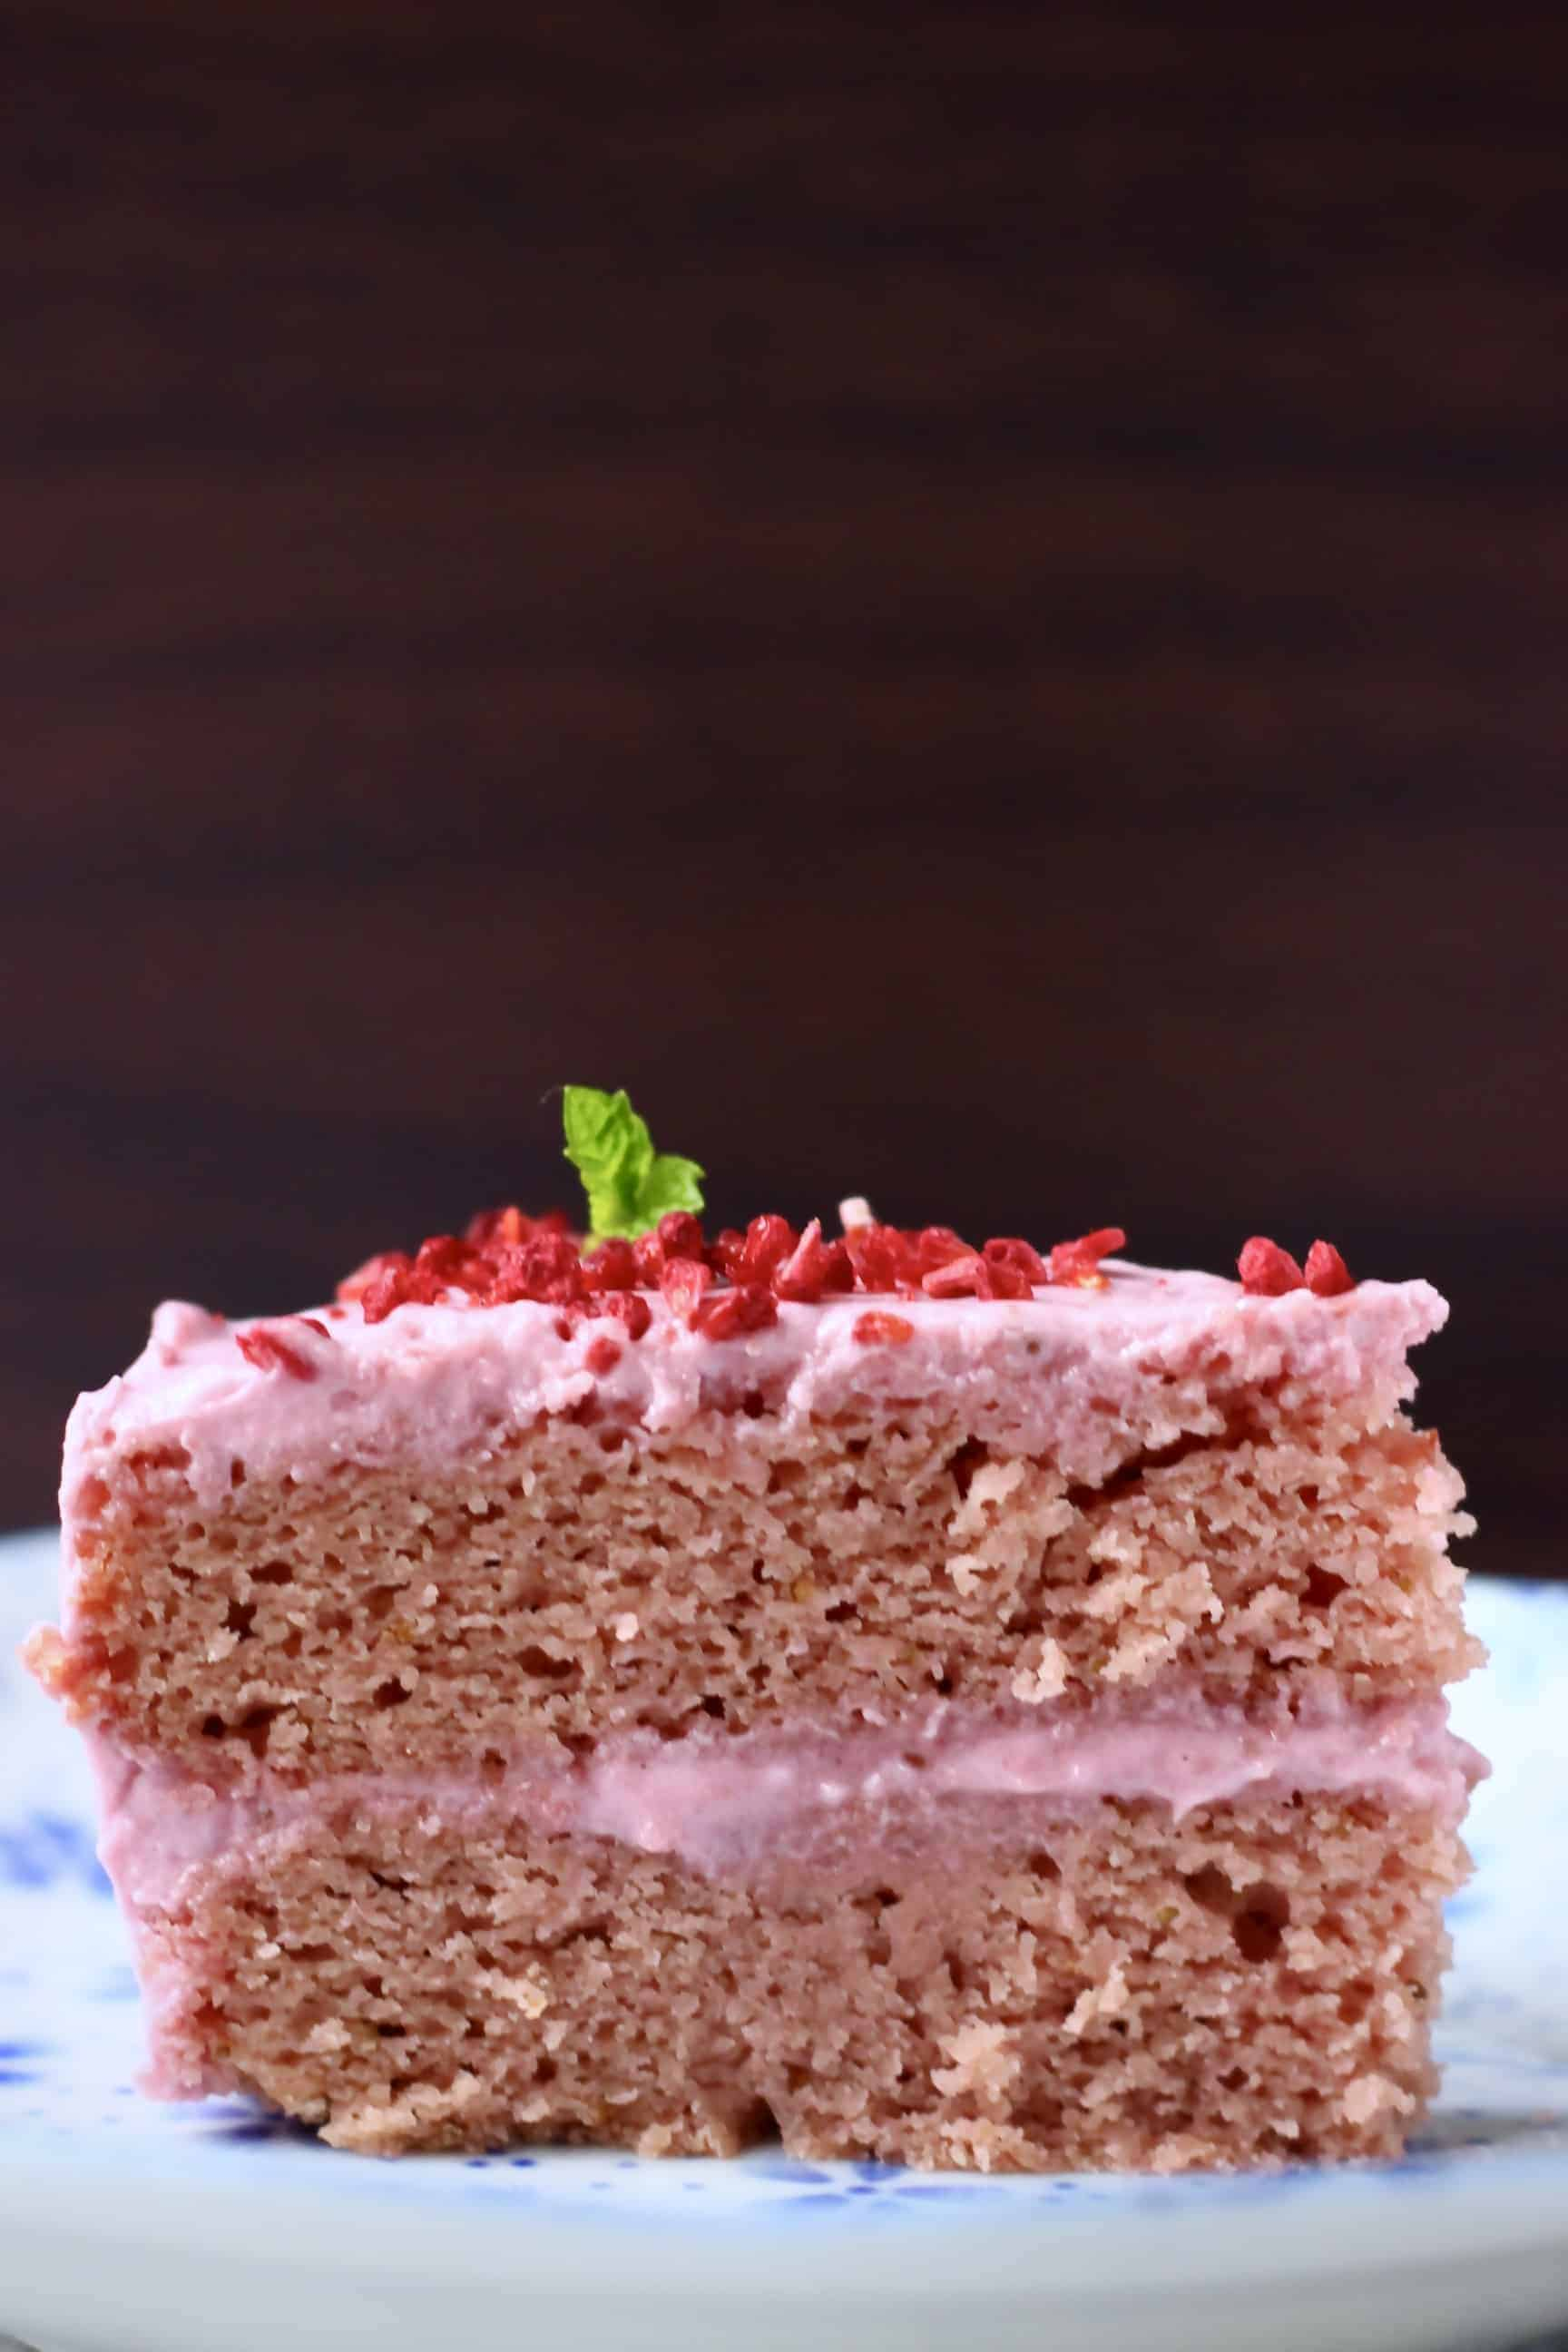 A slice of pink gluten-free vegan strawberry cake with pink strawberry frosting